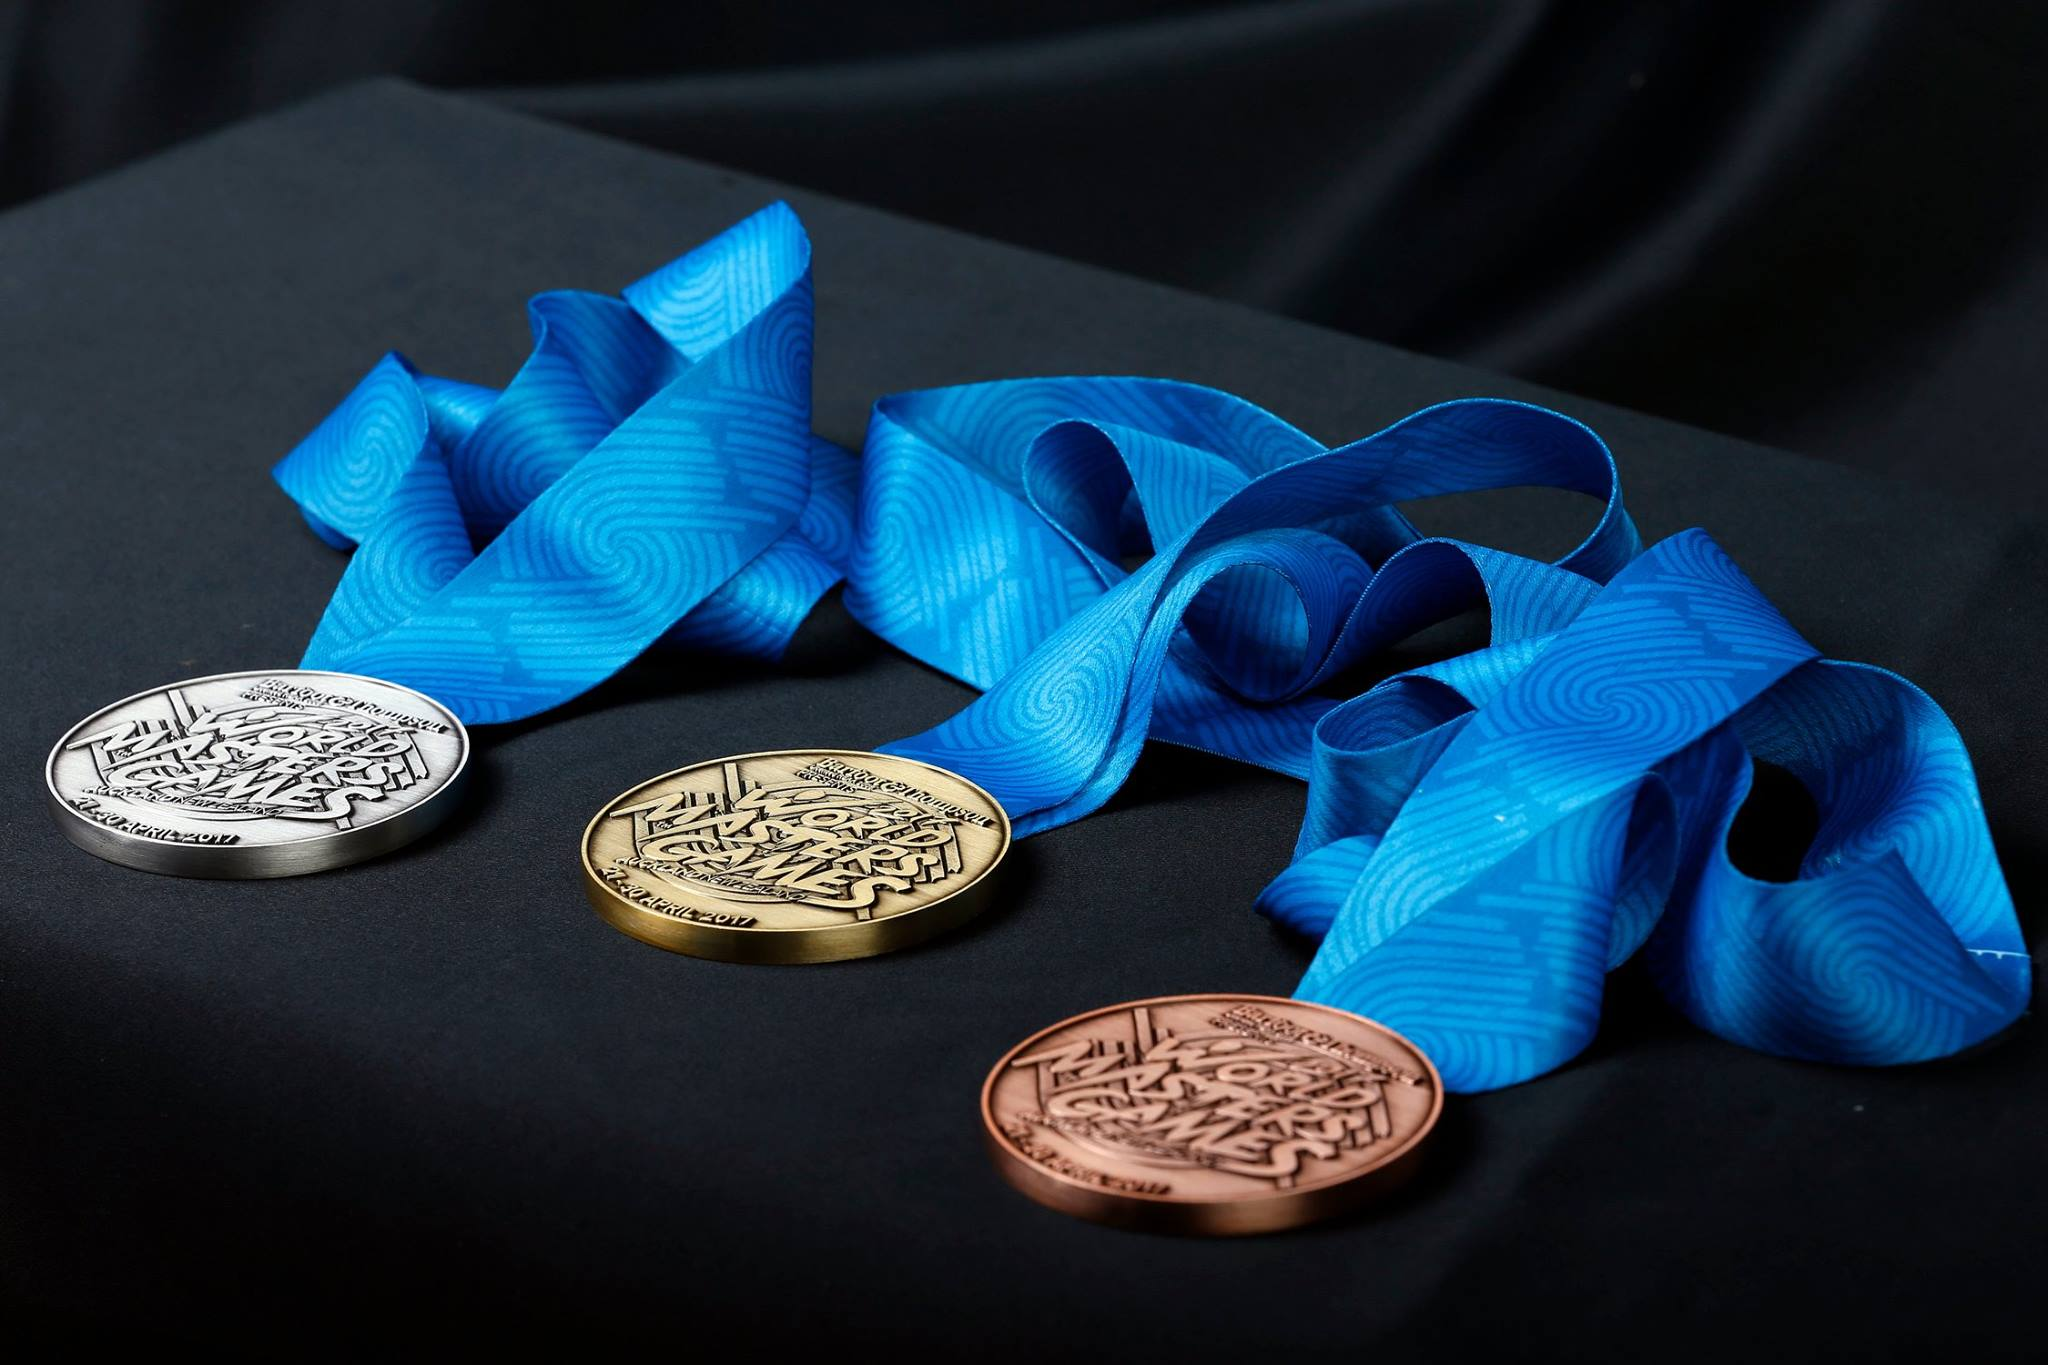 World Masters Games 2017 medals